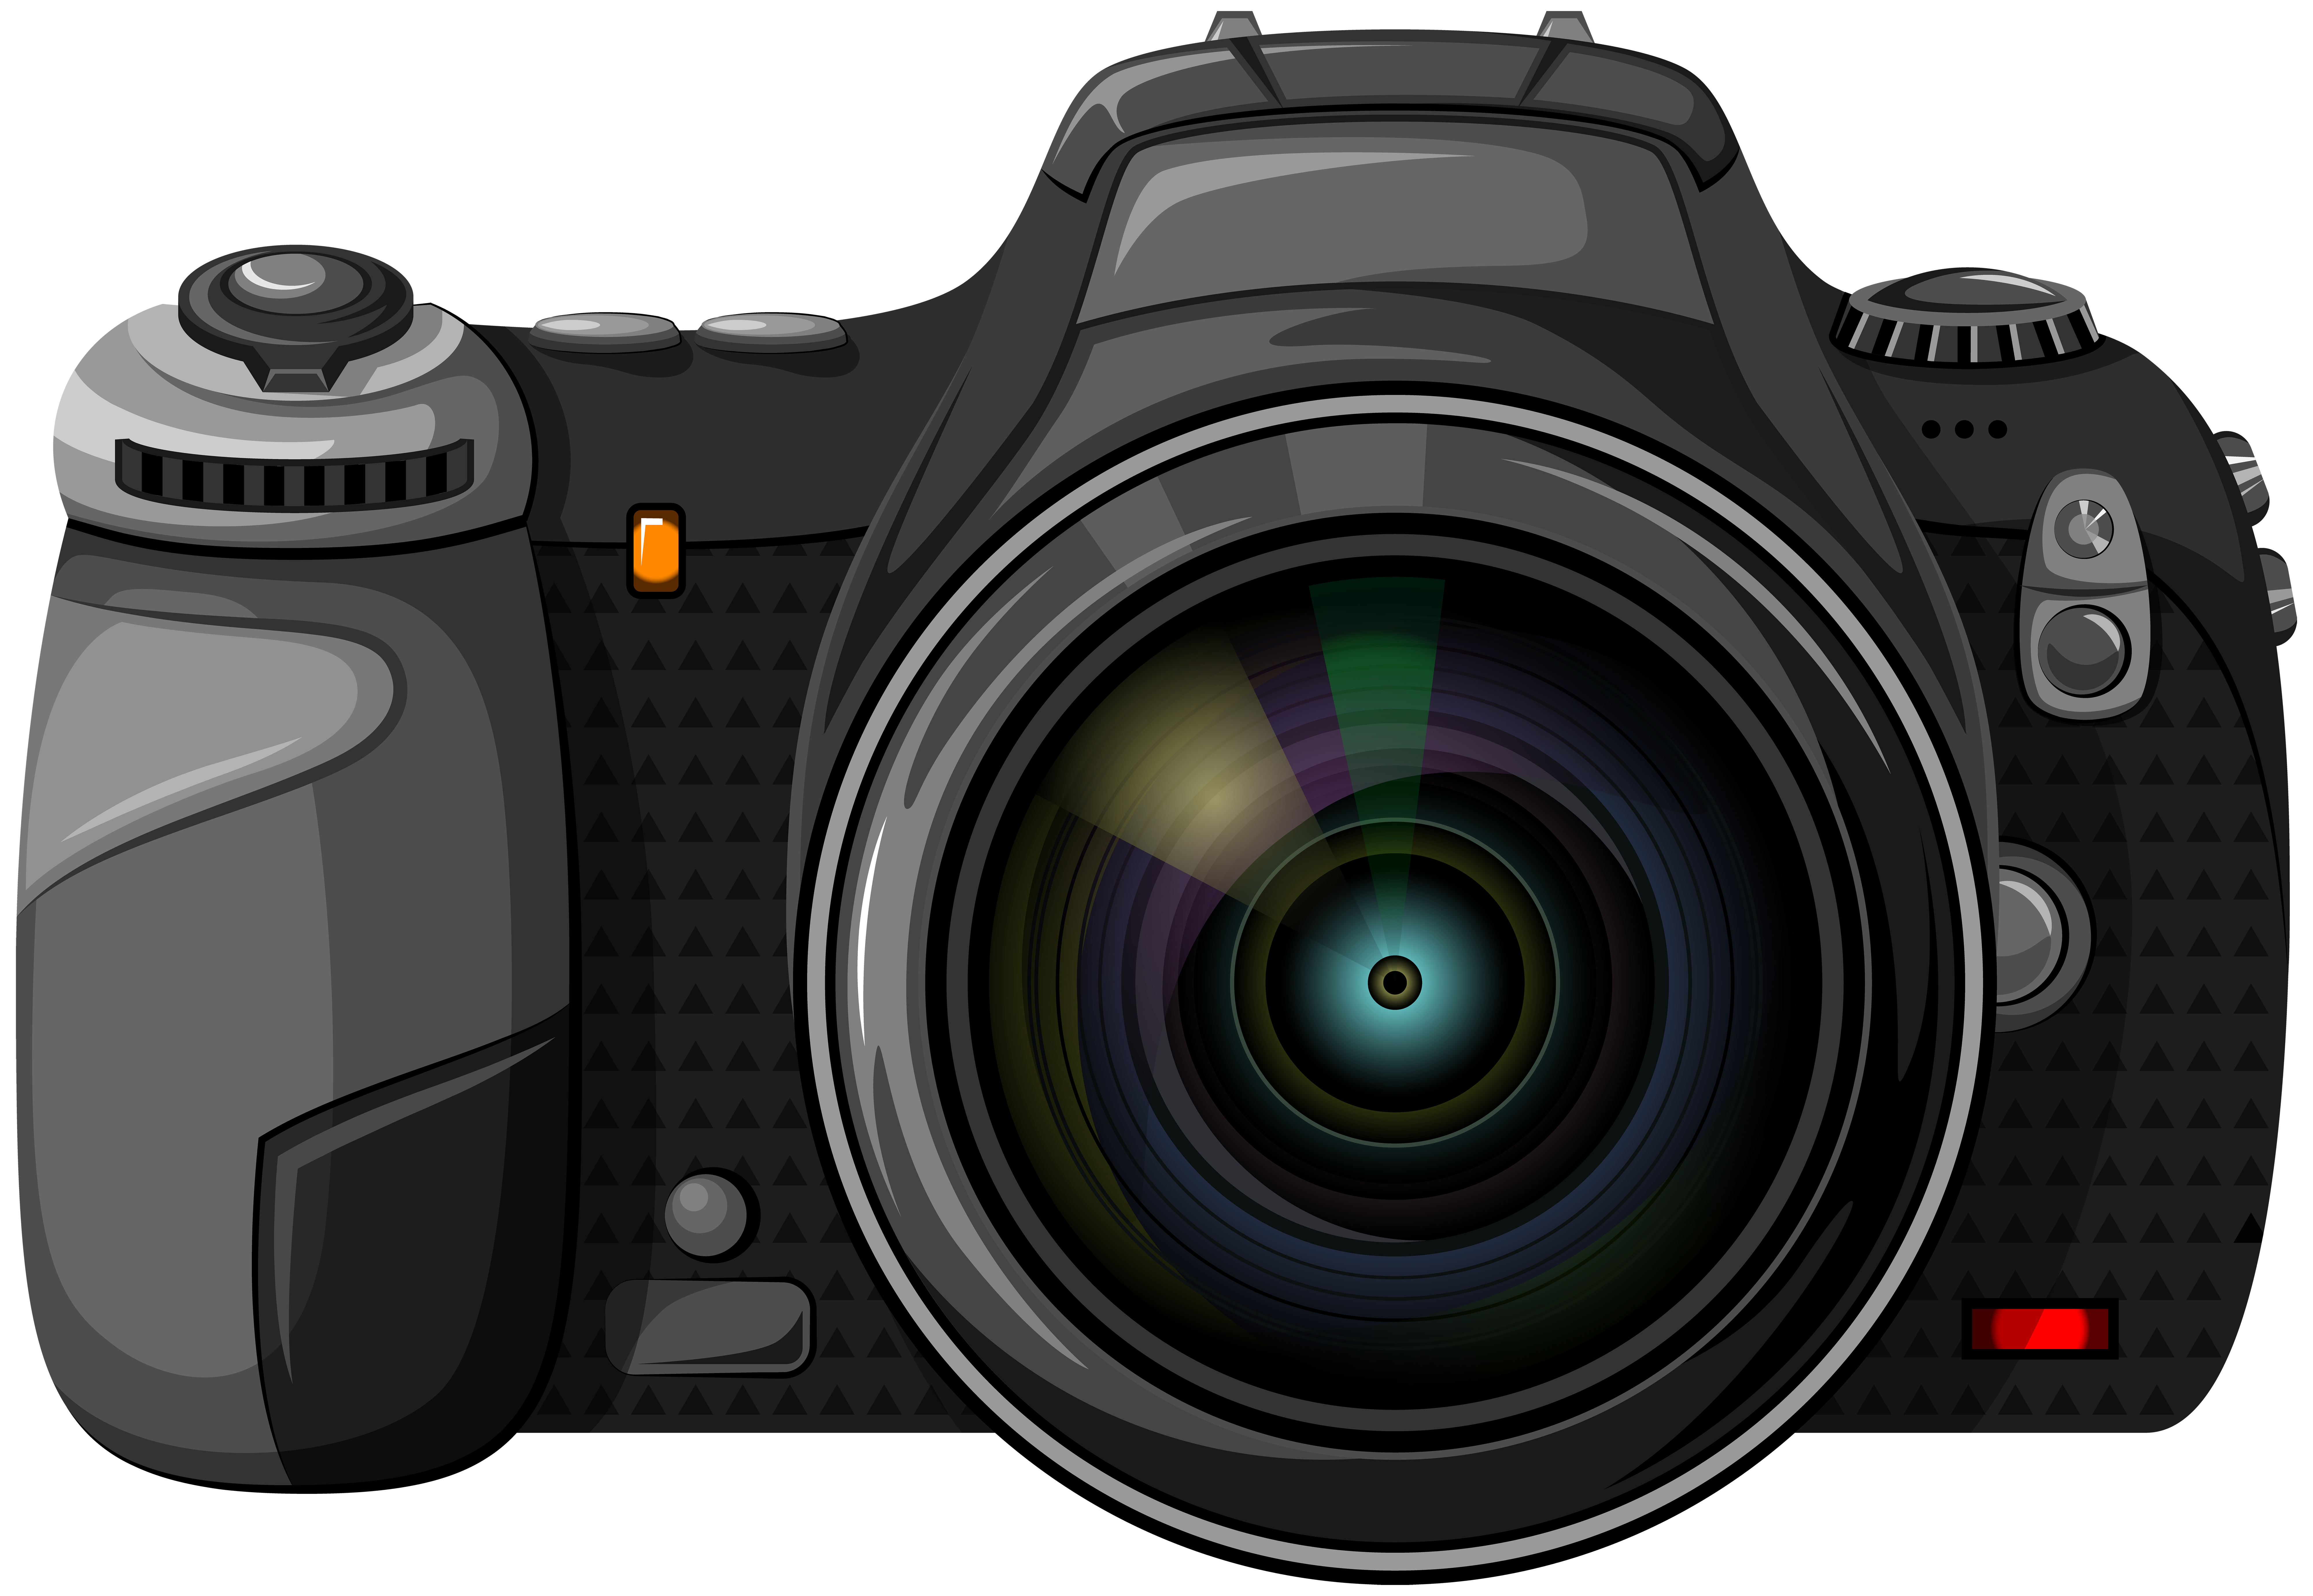 clip art freeuse library  collection of transparent. Camera clipart